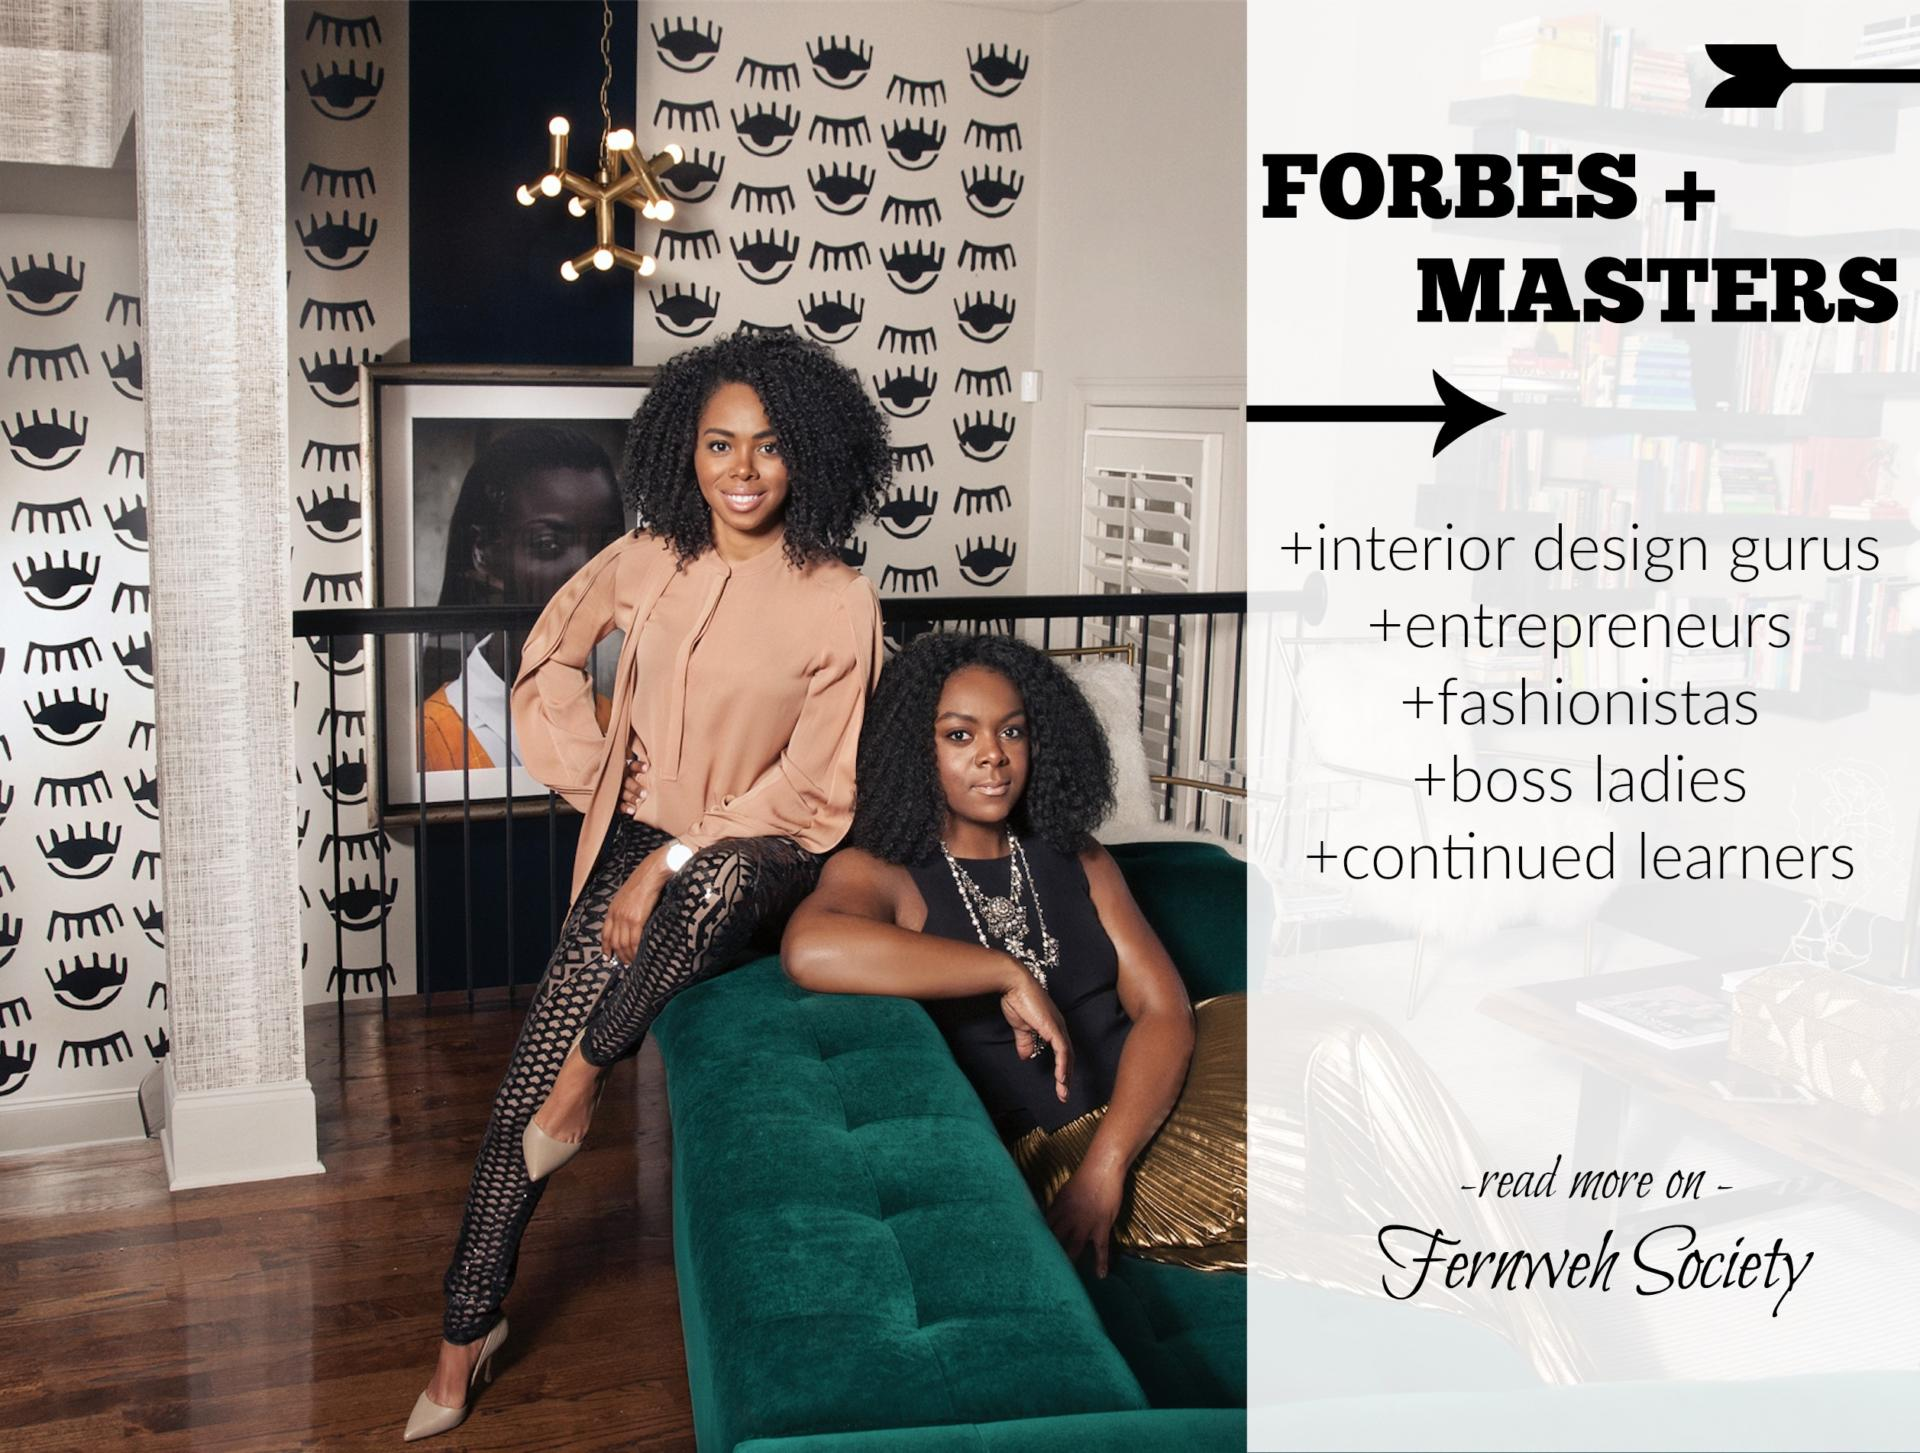 forbes + masters